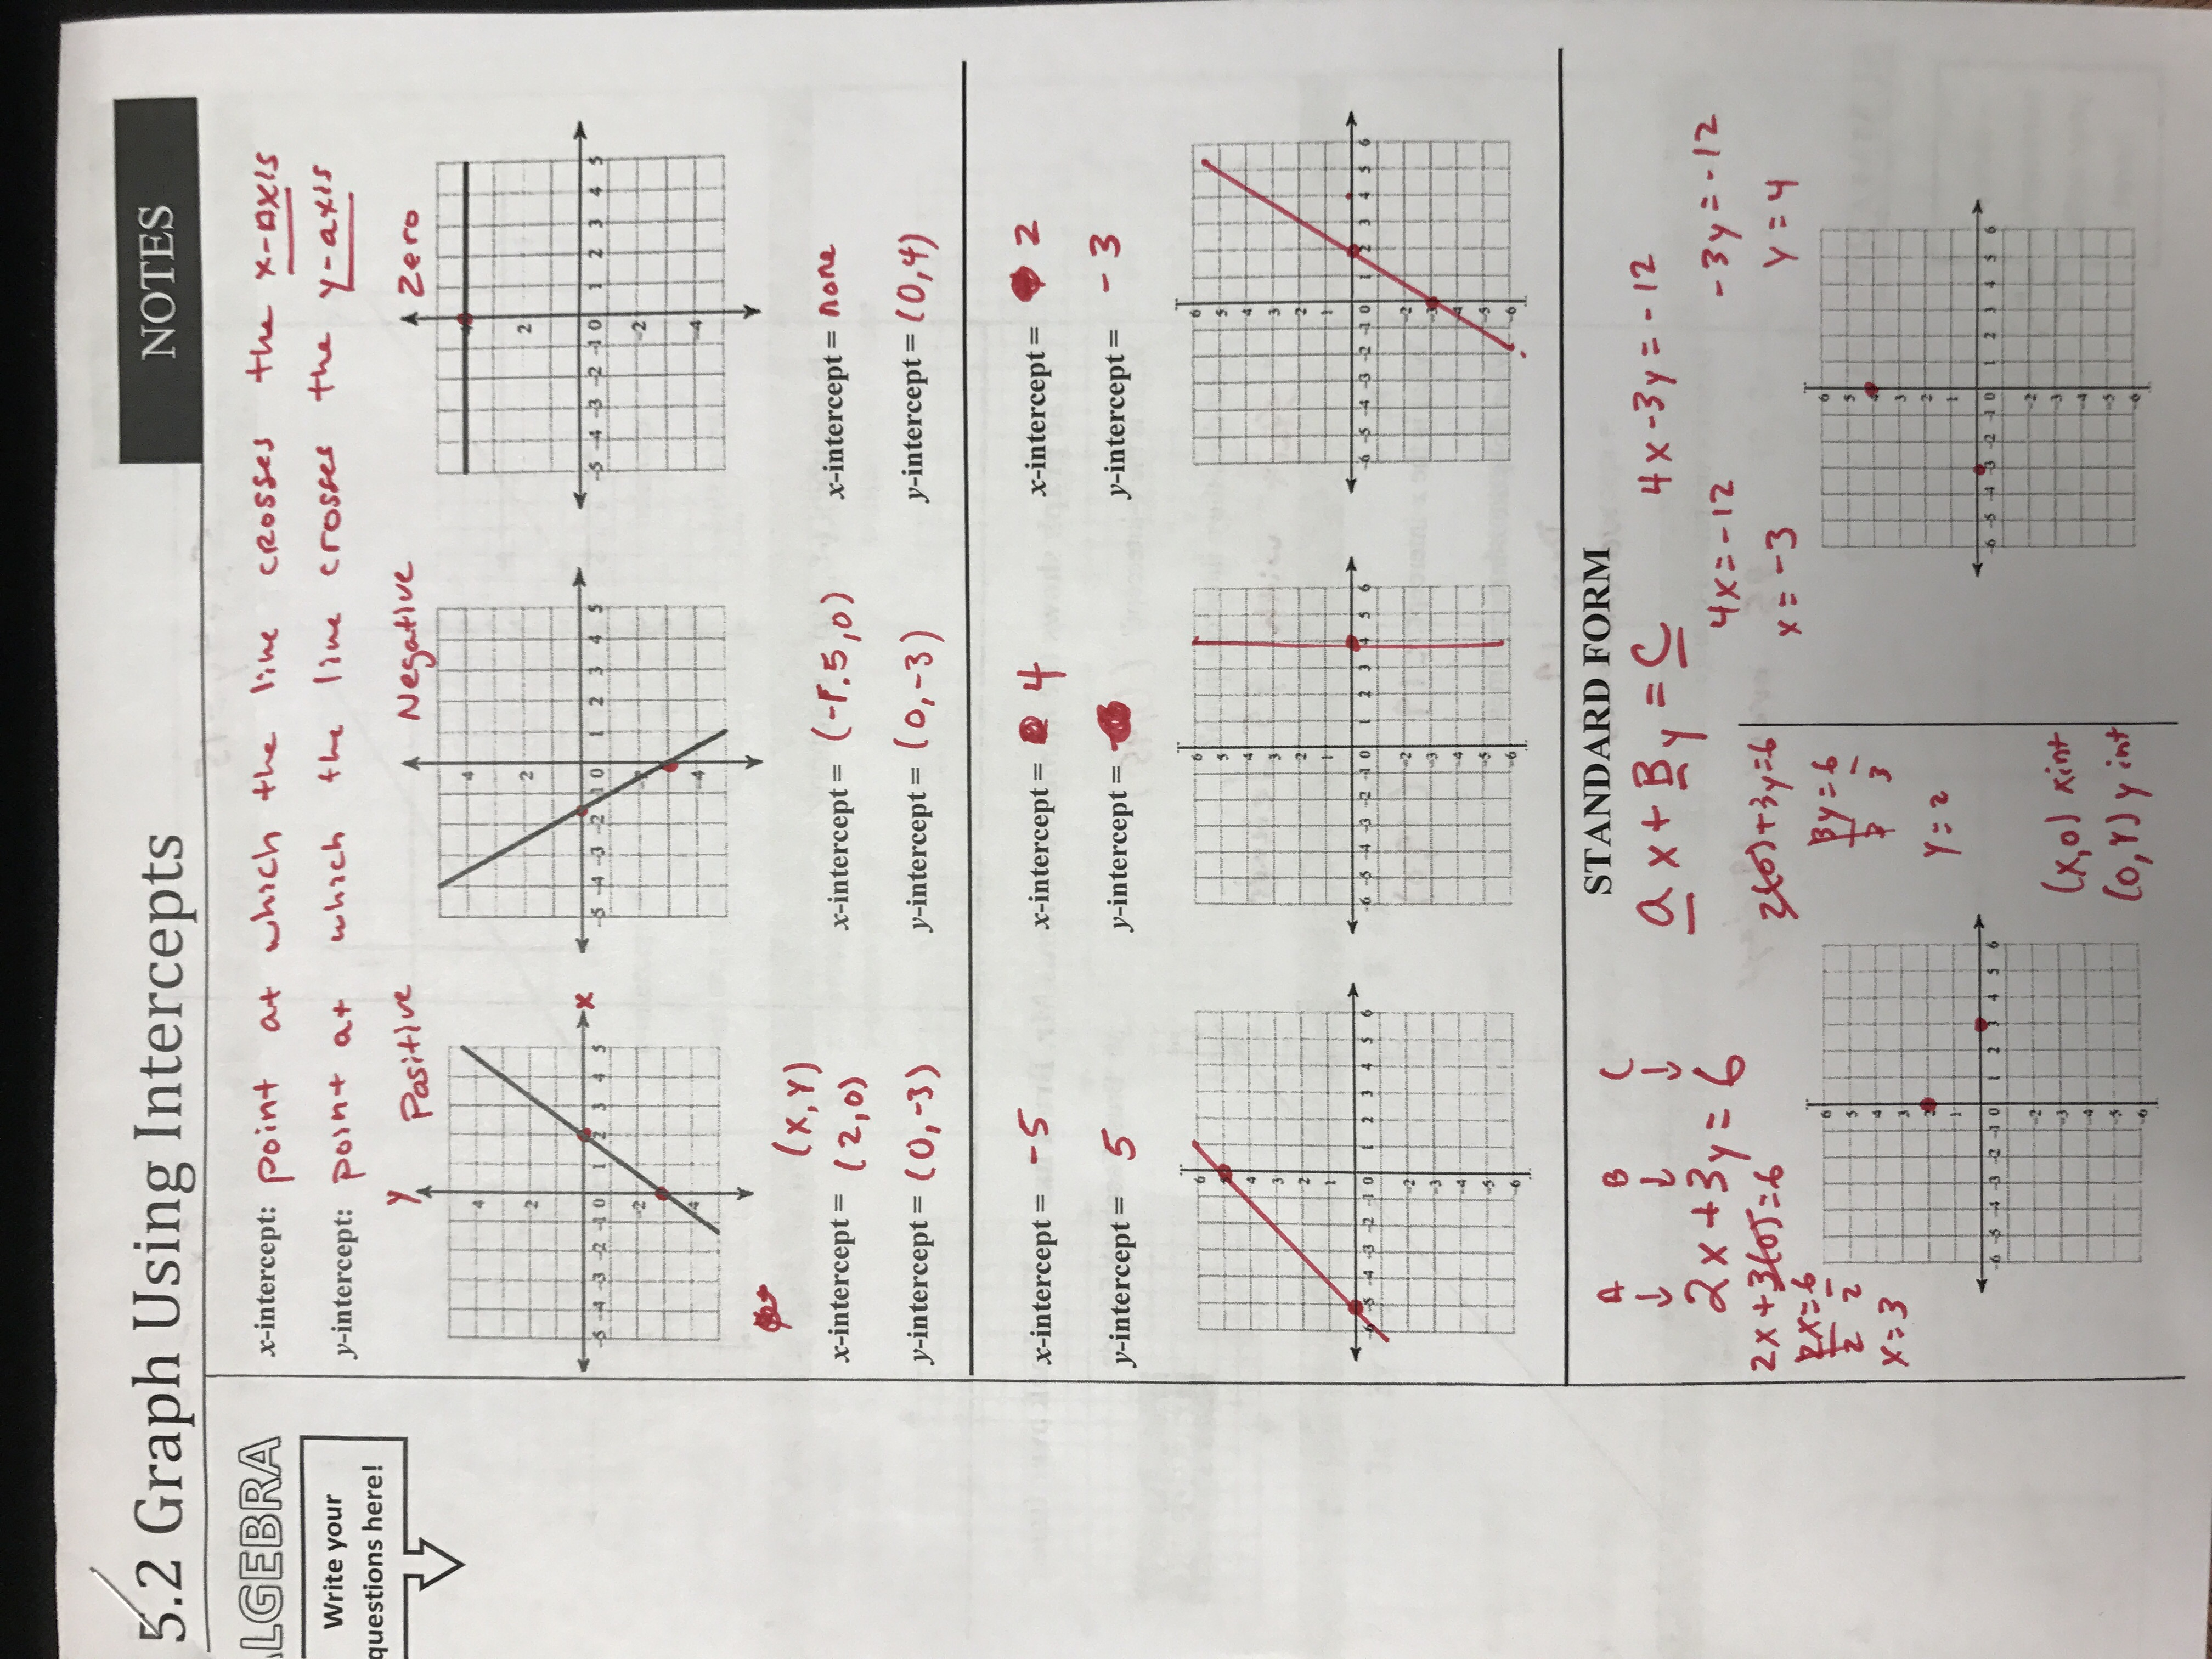 Lauritson george algebra 1 notes and coursework 52 notes falaconquin